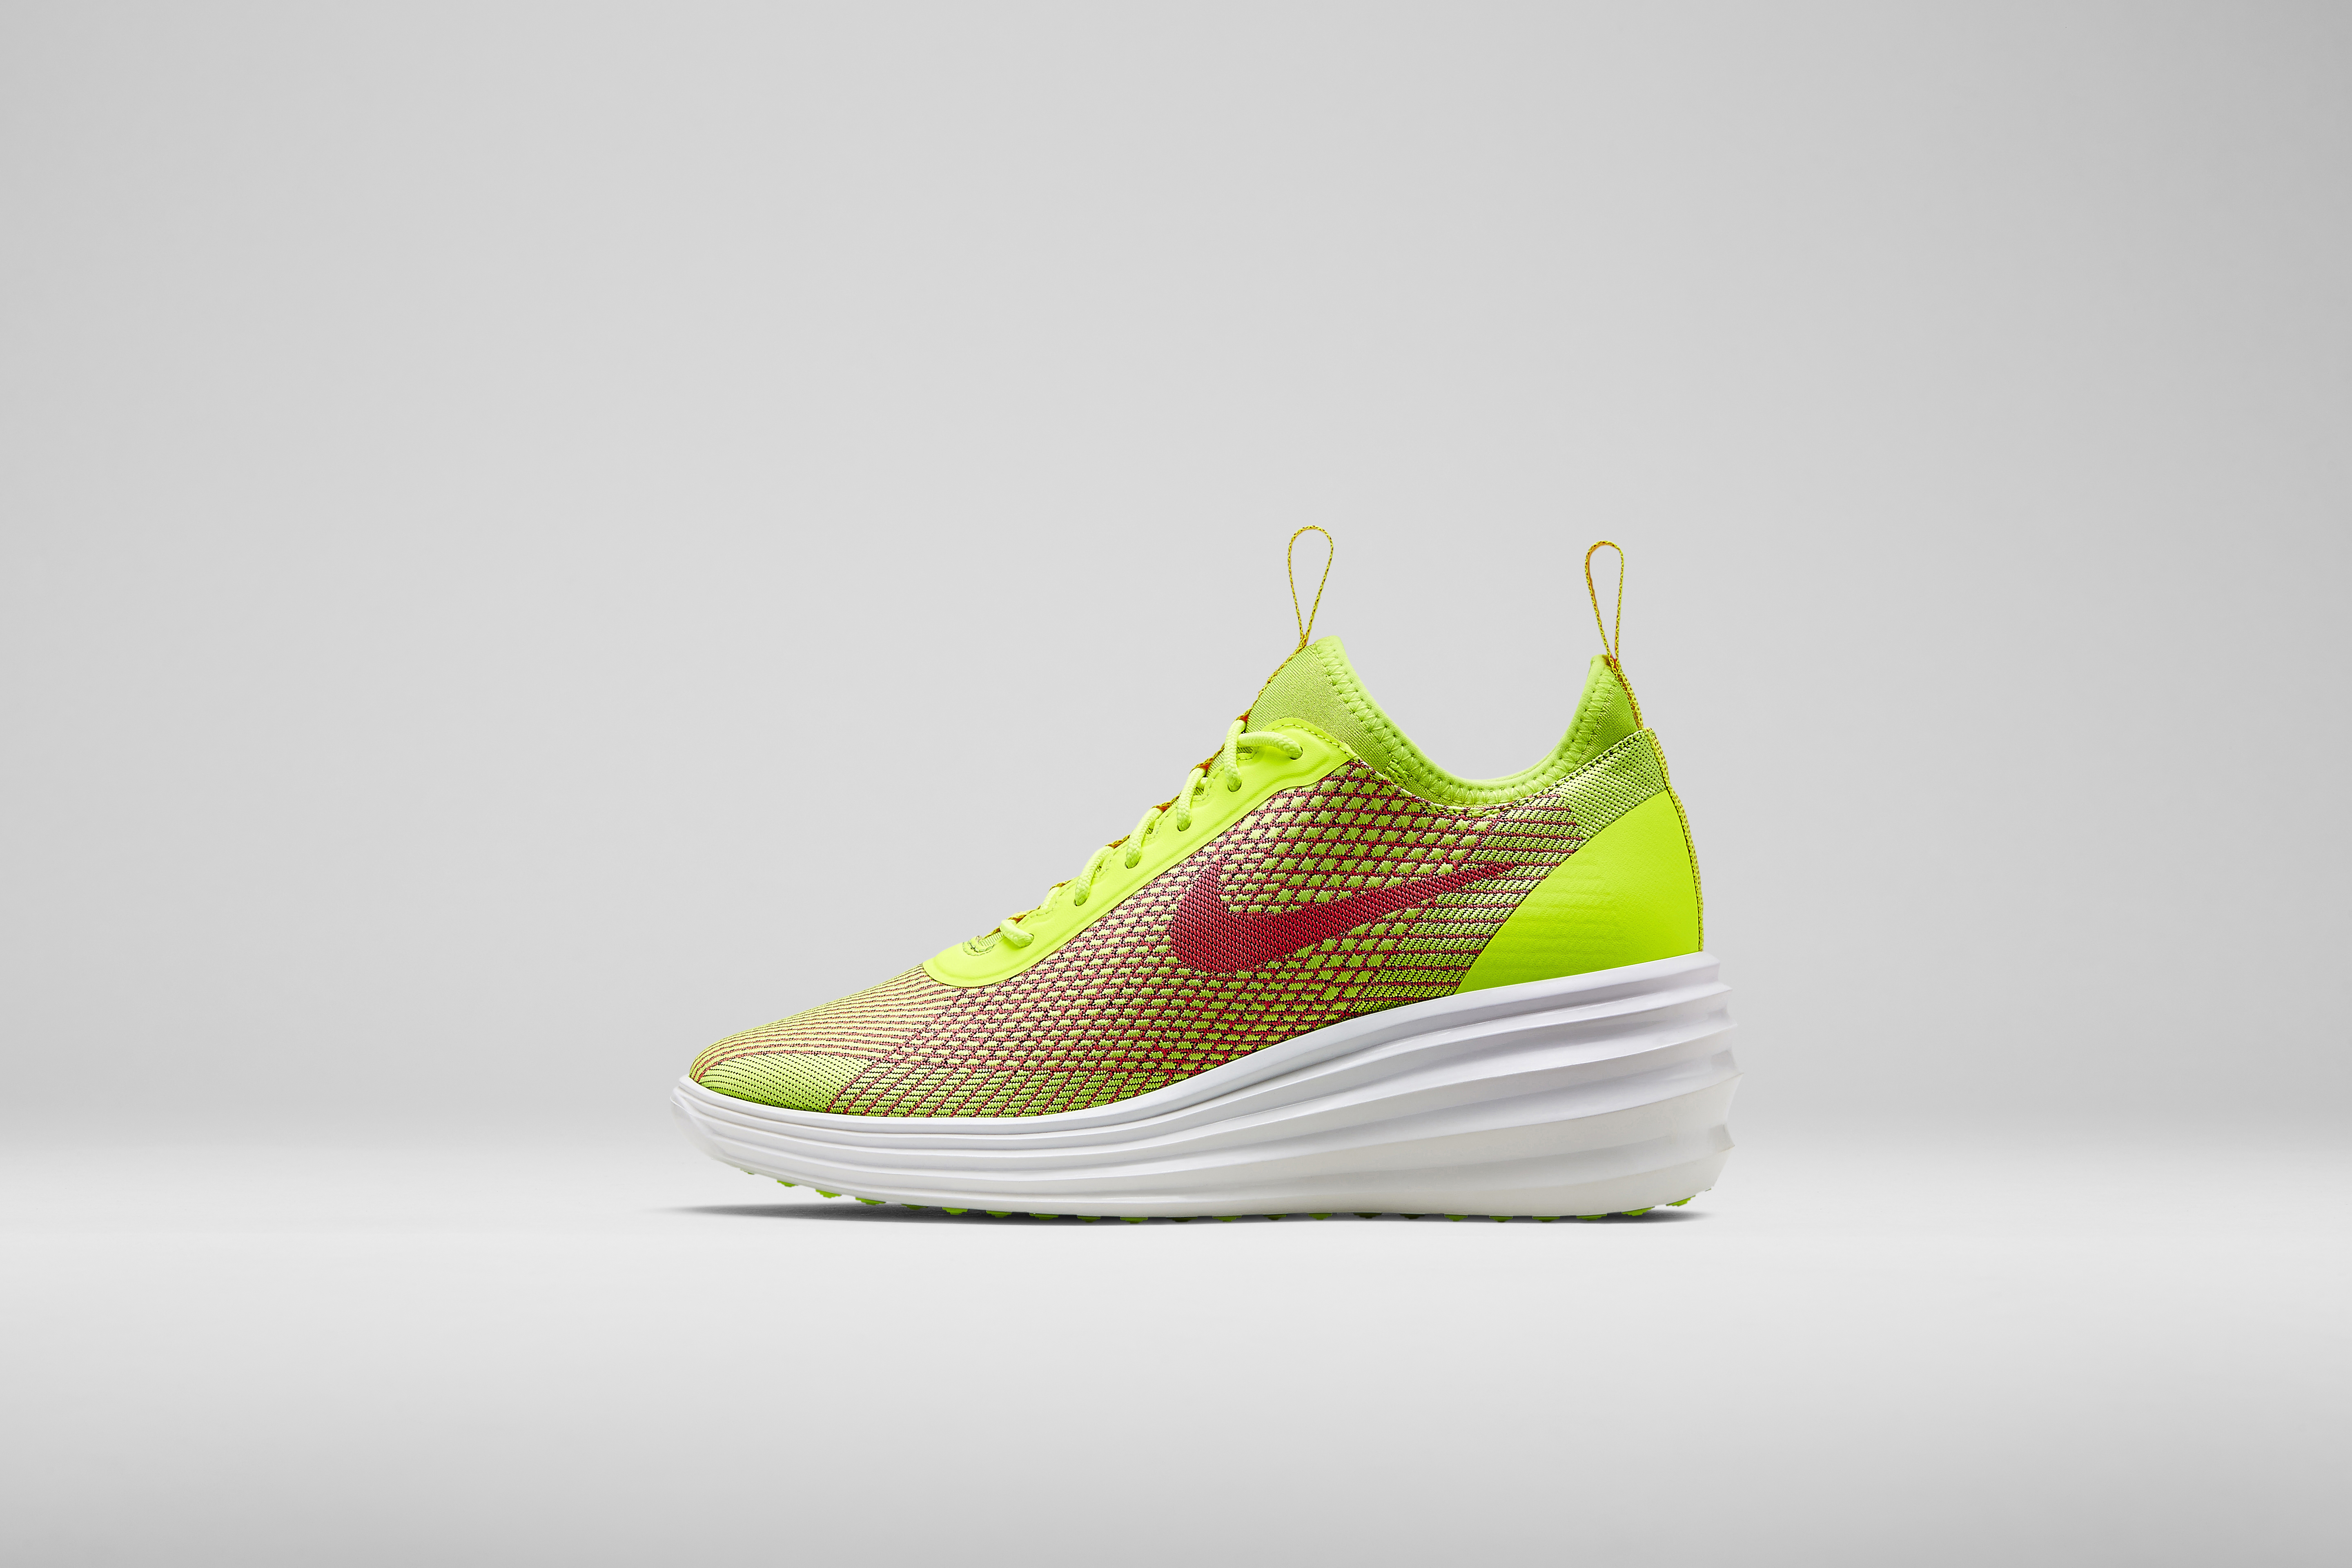 ... The Nike Sportswear Mercurial and Magista Collections - Nike Wmns Lunar  Elite Sky Hi SneakerBoot Nike Wmns Lunar Elite Sky Hi JCRD Jacquard ...